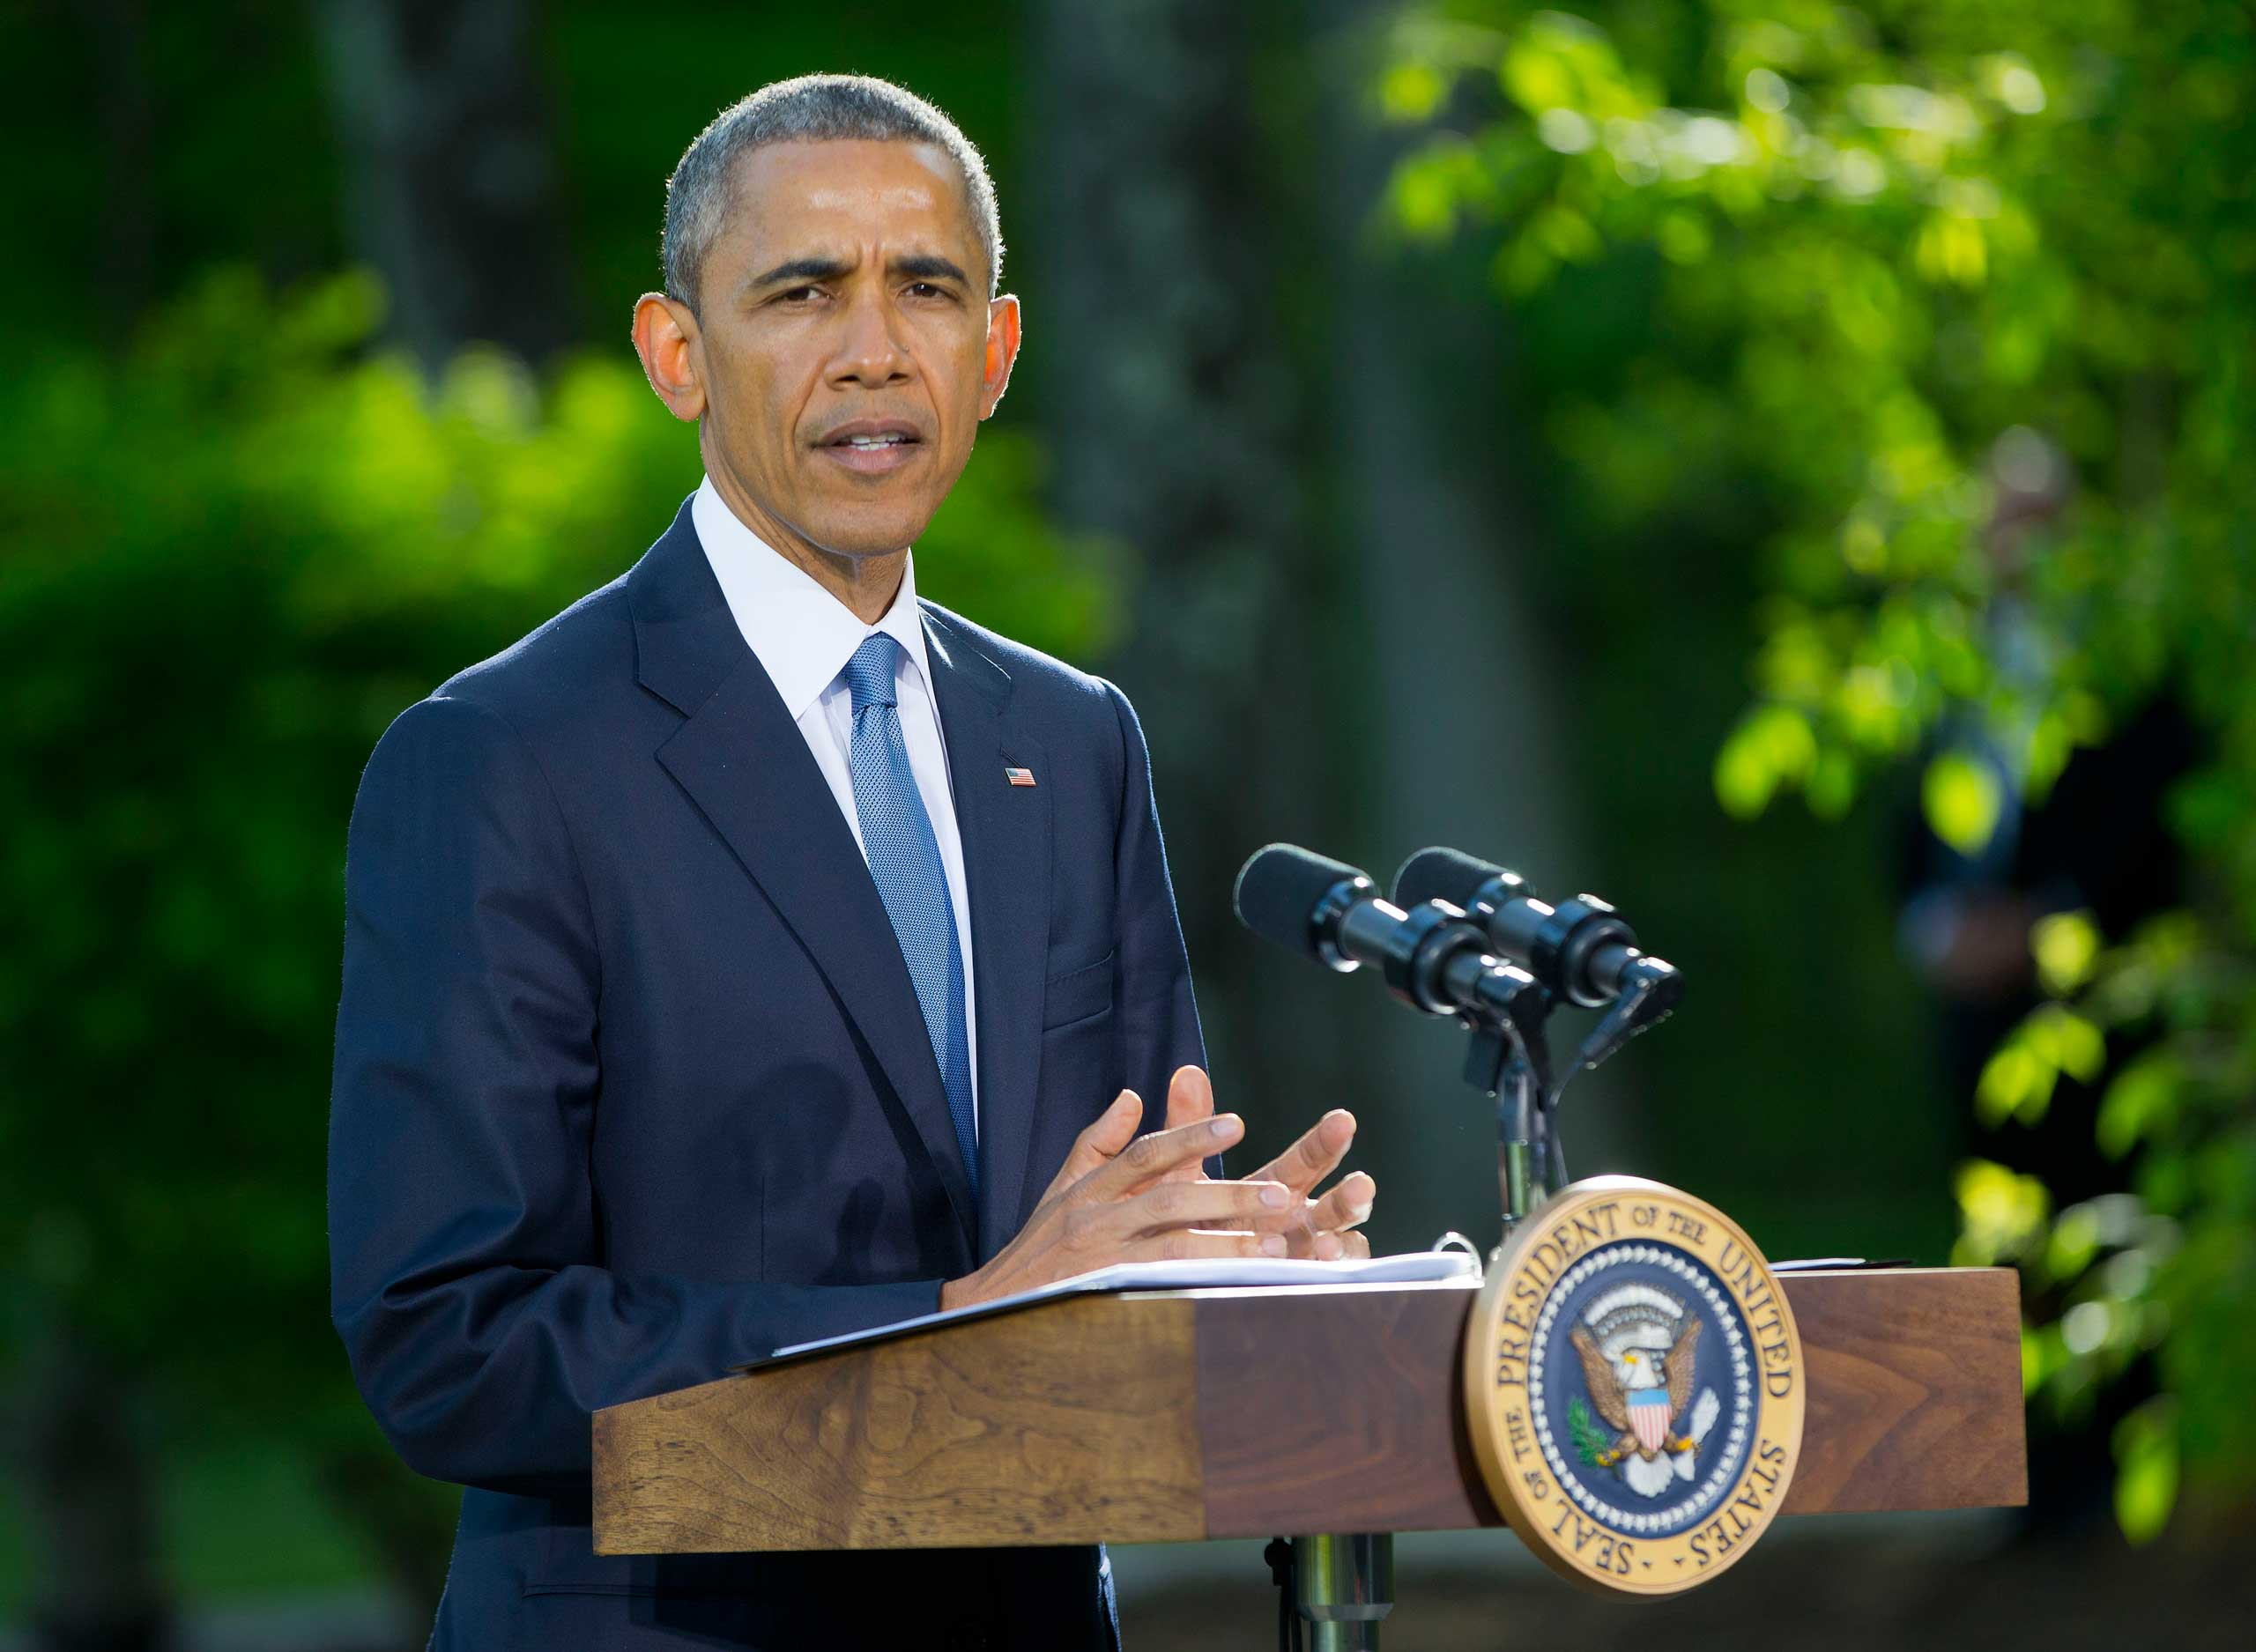 President Barack Obama speaks during a news conference after meeting with Gulf Cooperation Council leaders and delegations at Camp David in Maryland.